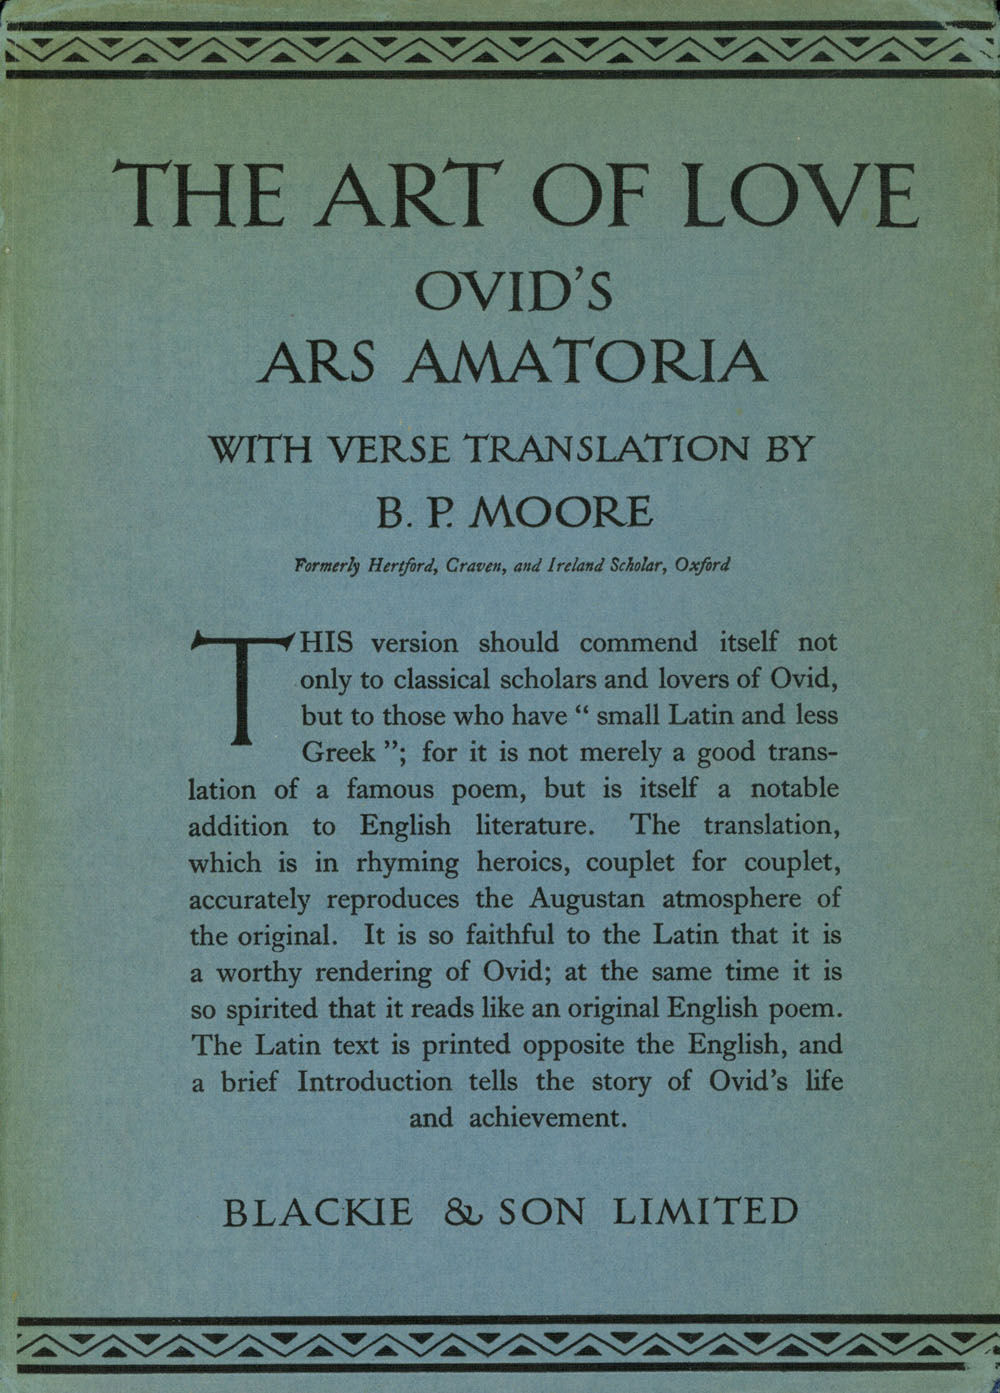 art of love ovid The art of love book ii sing, and sing again io pæan the quarry that i was hot upon hath fallen into my toils let the joyous lover set the laurel crown upon my brow and raise me to a loftier pinnacle than hesiod of ascra or the blind old bard of mæonia.